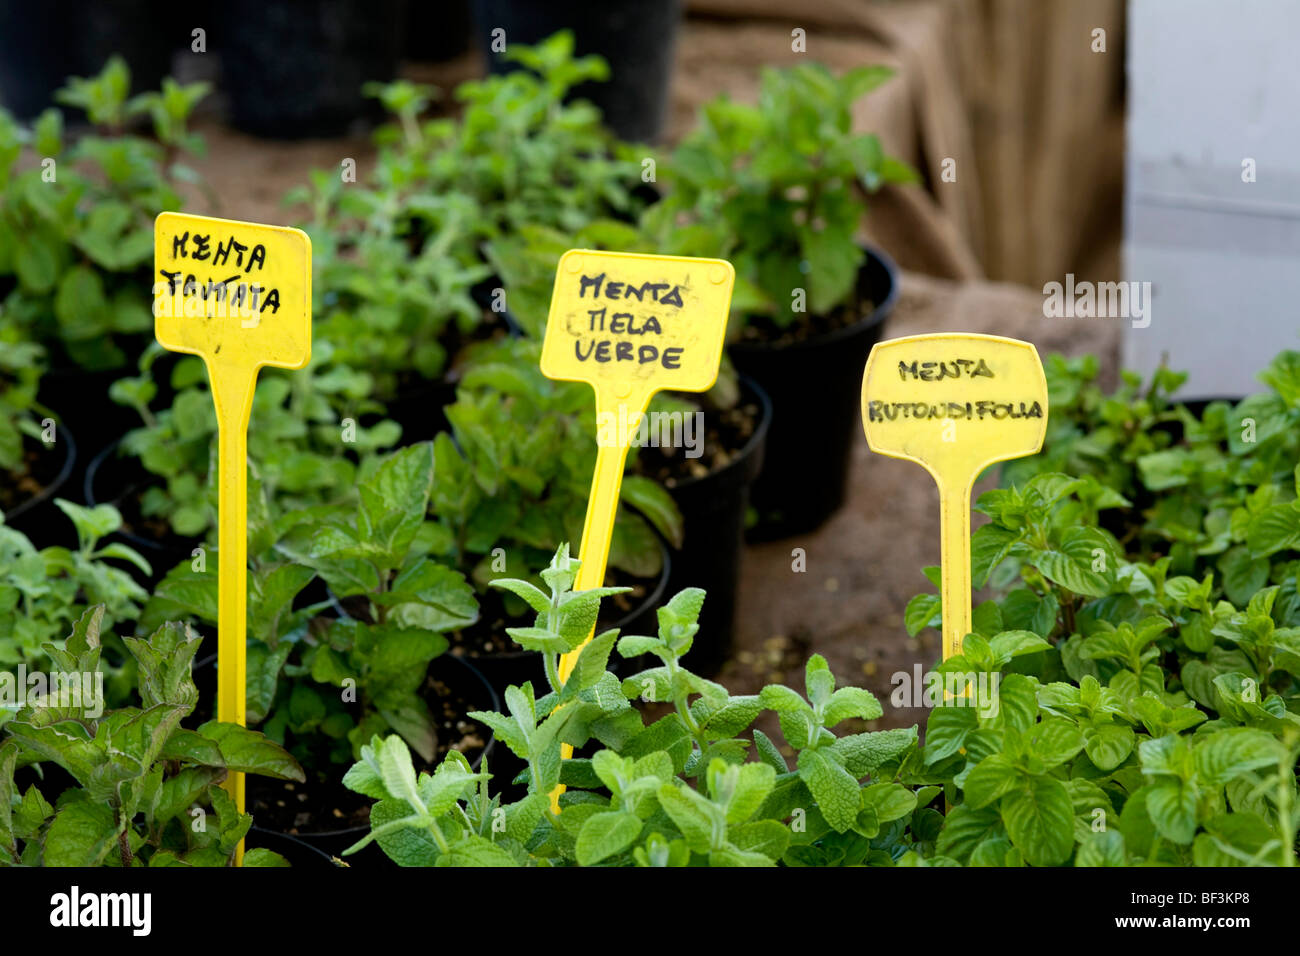 Plants For Kitchen Garden Mint Plants And Signs In Kitchen Garden Stock Photo Royalty Free